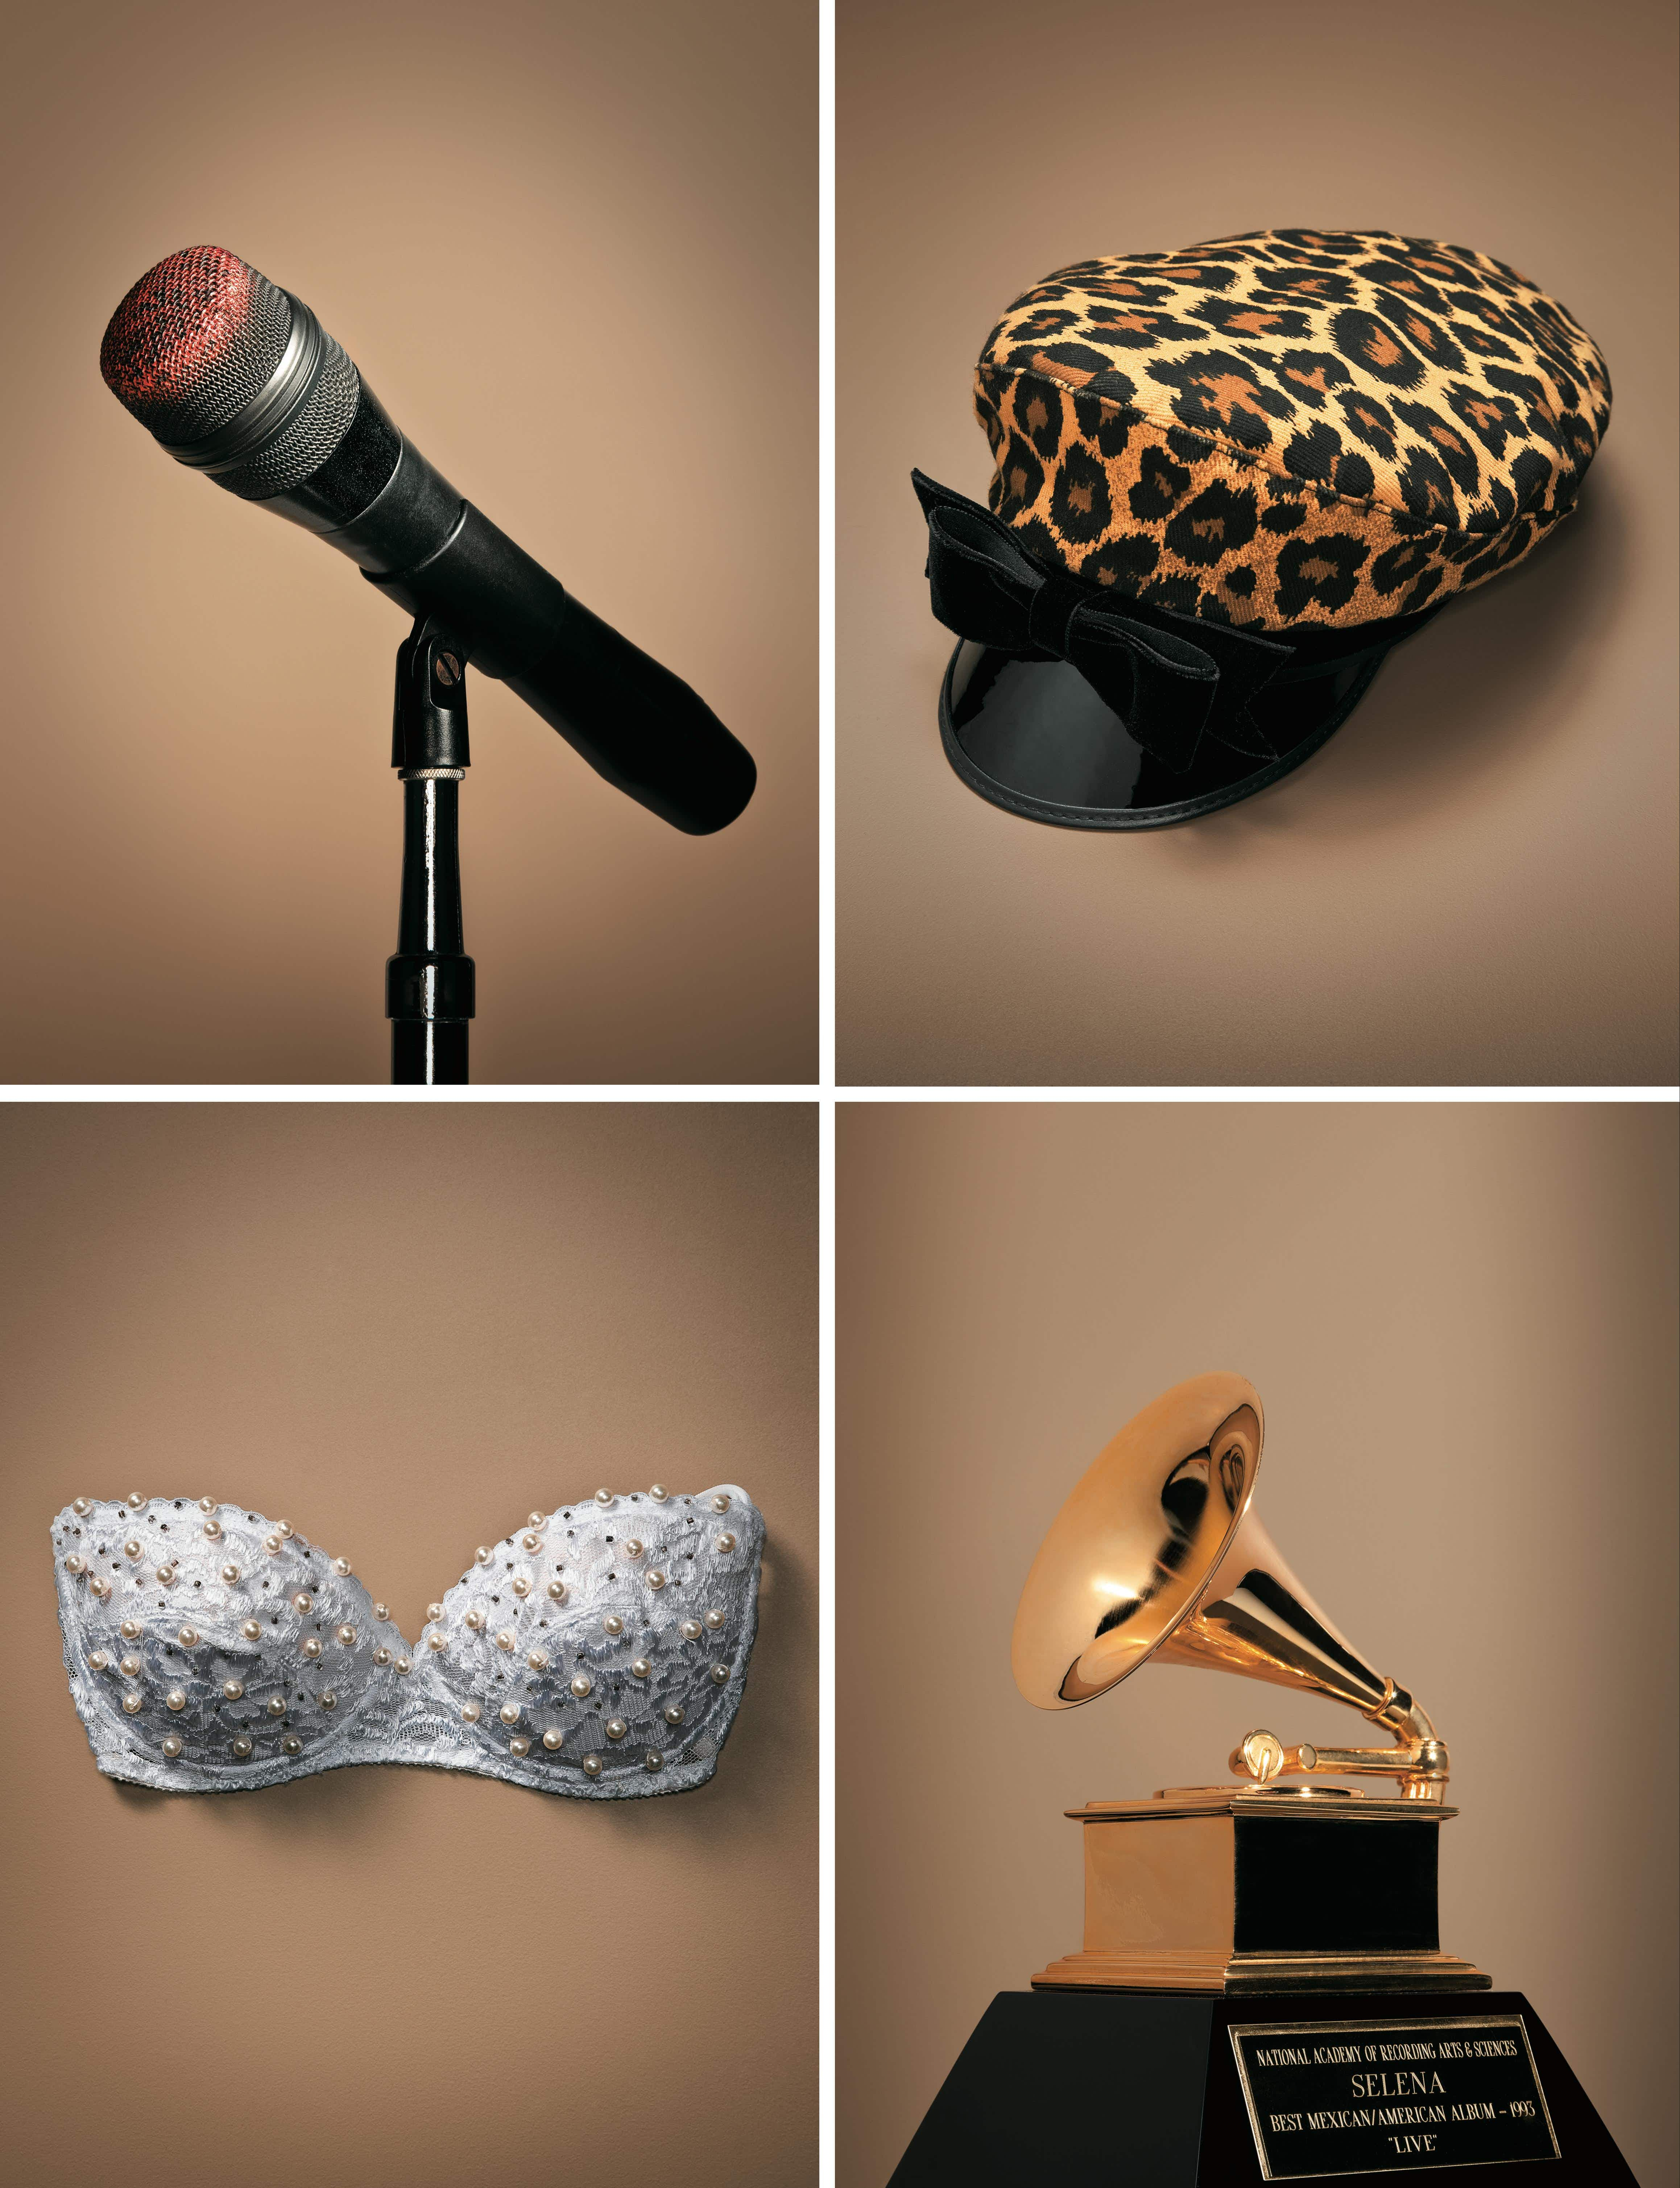 From top left: Selena's lipstick-covered microphone, which she frequently had to have cleaned; one of the singer's favorite hats, often worn at autograph signings; the 1993 Grammy for Live!; the bustier Selena hand-beaded for her 1994 Astrodome show.